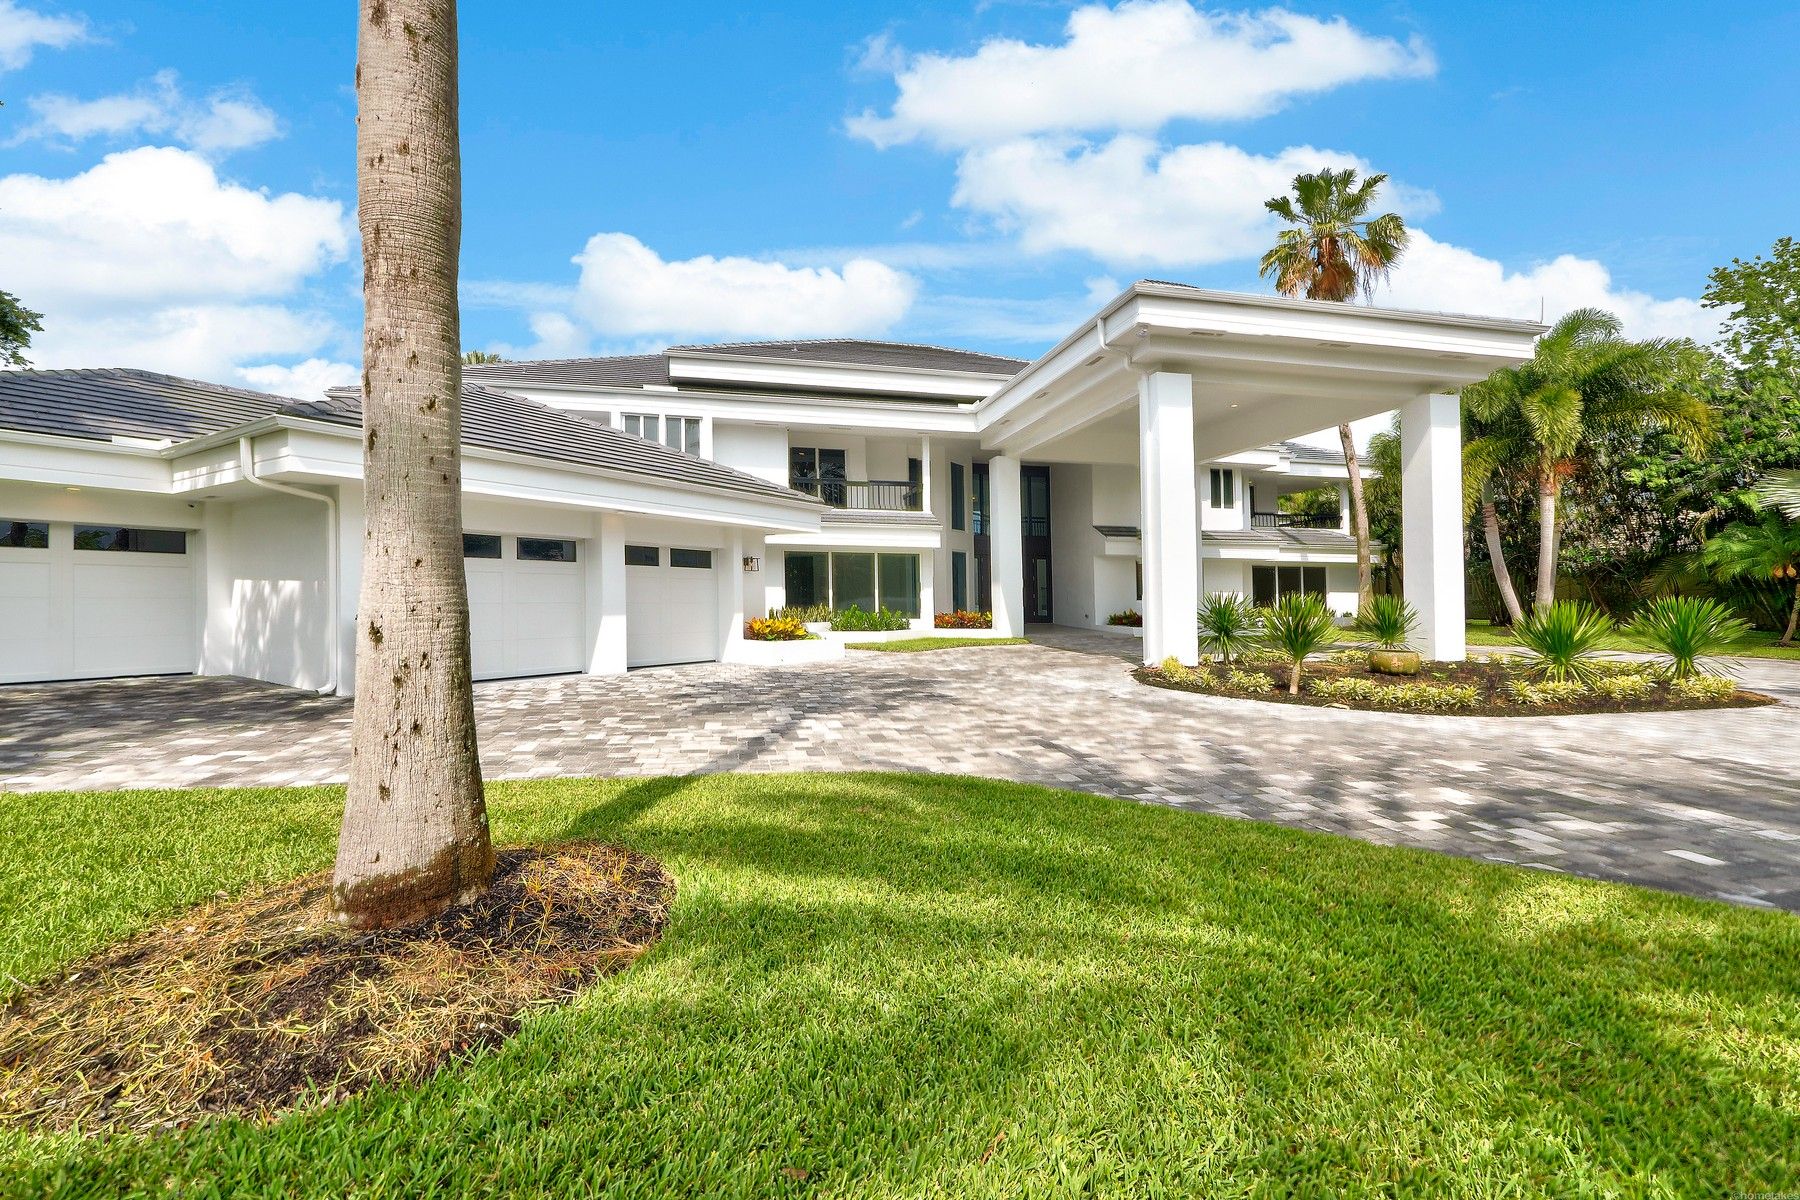 Moradia para Venda às 2771 Long Meadow Drive Wellington, Florida, 33414 Estados Unidos